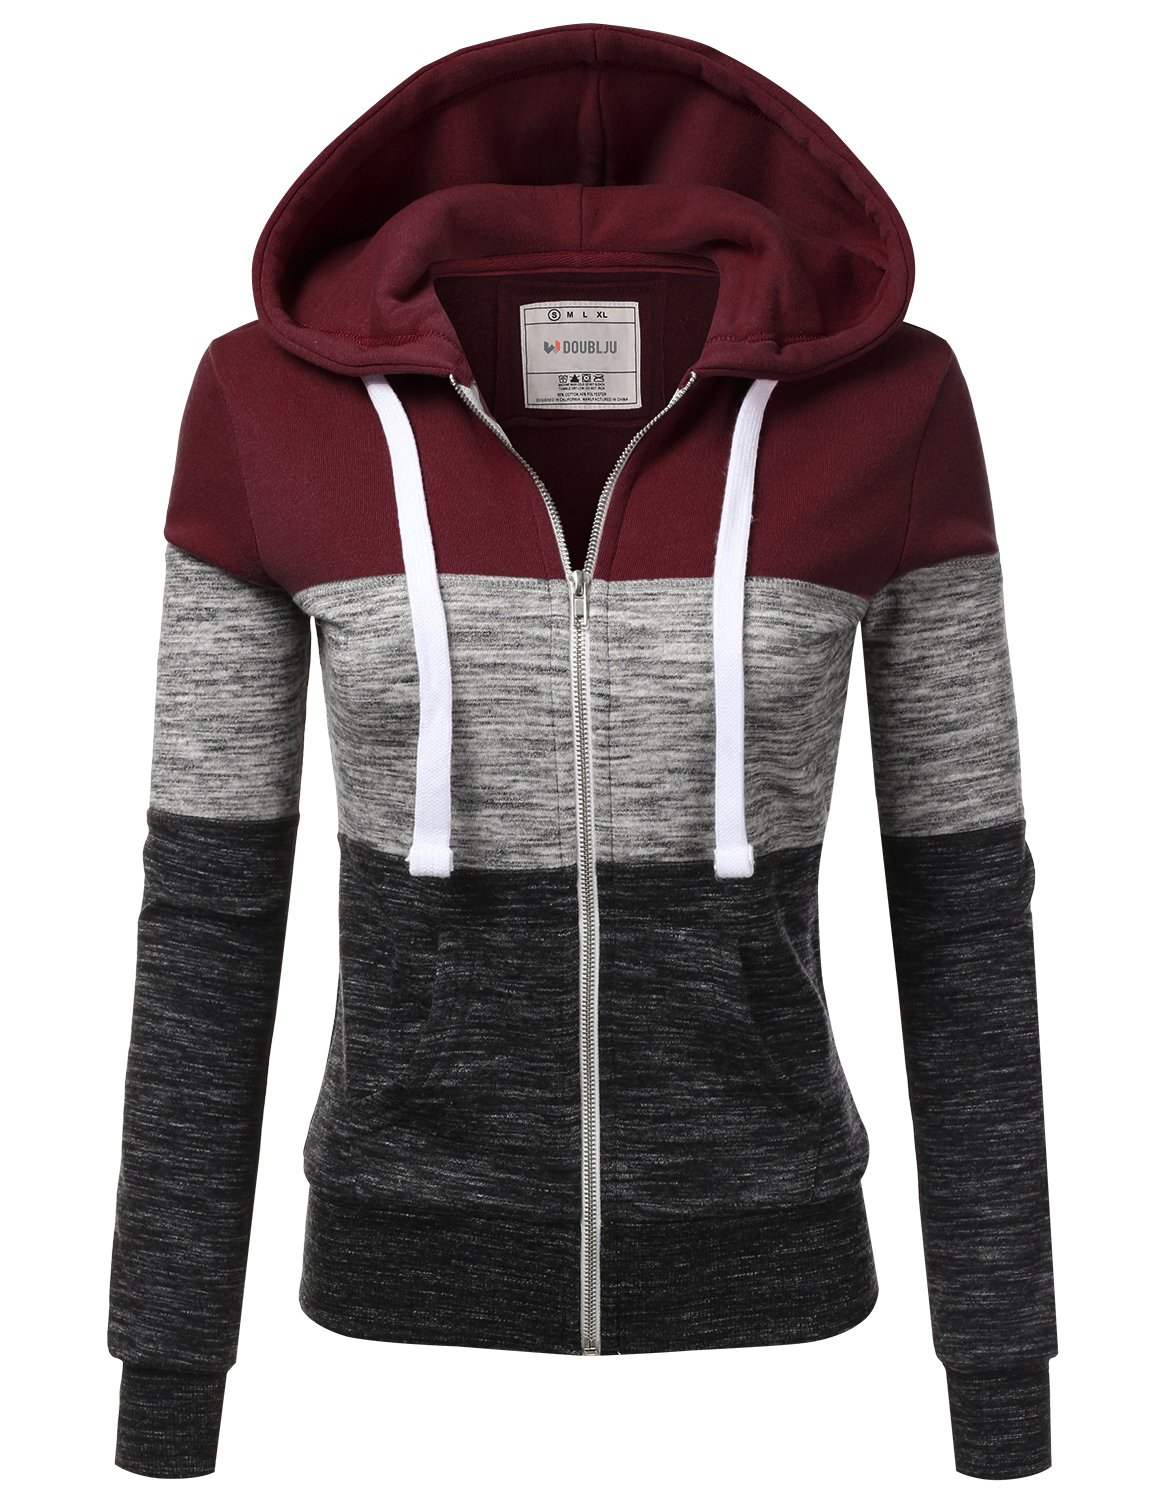 ویکالا · خرید  اصل اورجینال · خرید از آمازون · Doublju Lightweight Thin Zip-Up Hoodie Jacket for Women with Plus Size Burgundy Large wekala · ویکالا